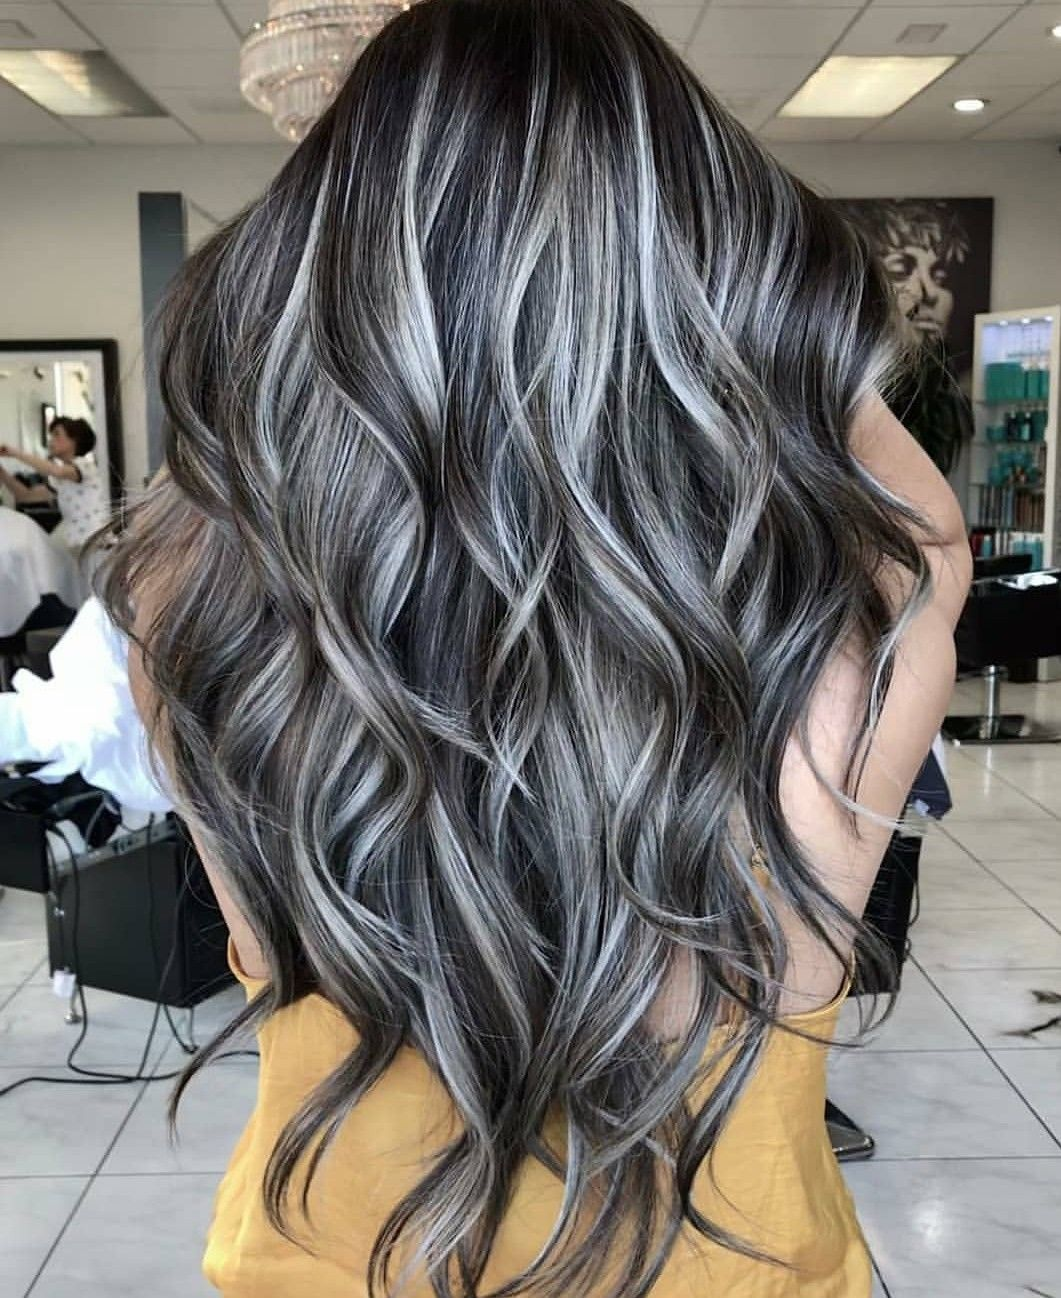 This Is It This Is What I Want Gray Hair Highlights Silver Hair Color Haircuts For Long Hair